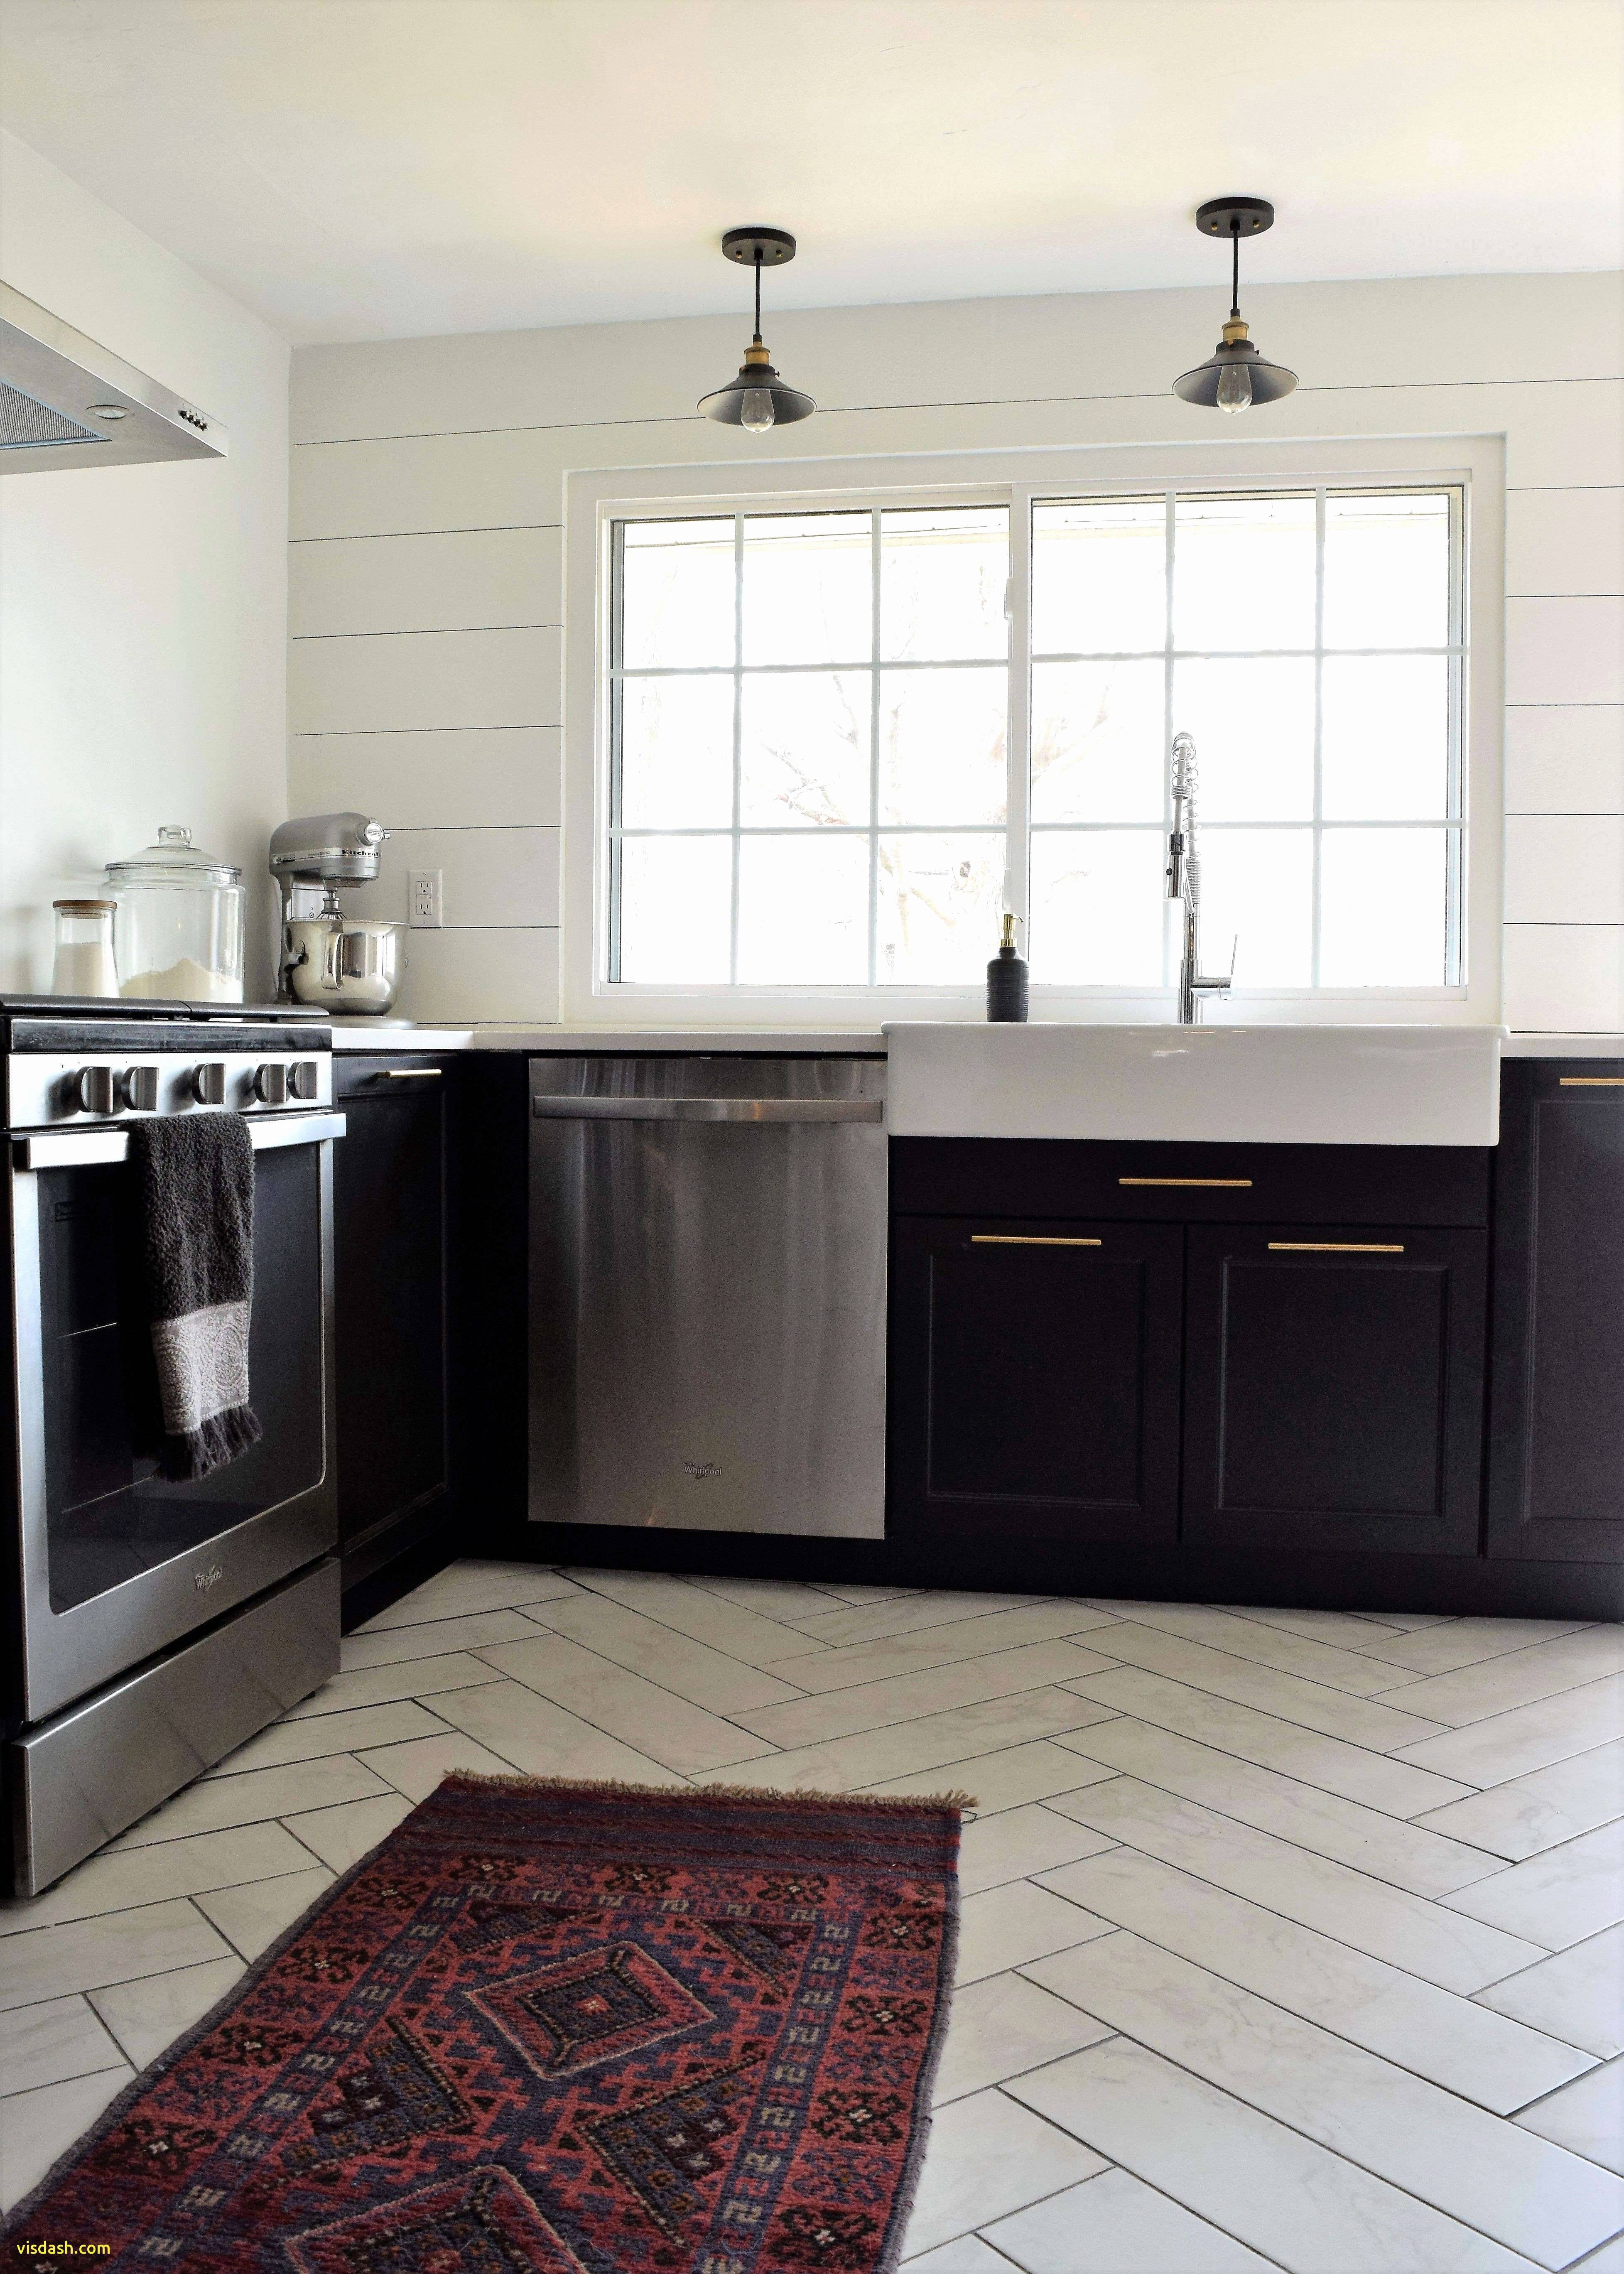 picture 4 of 50 subway tile sizes luxury gray subway tile kitchen of tile styles for kitchen backsplash